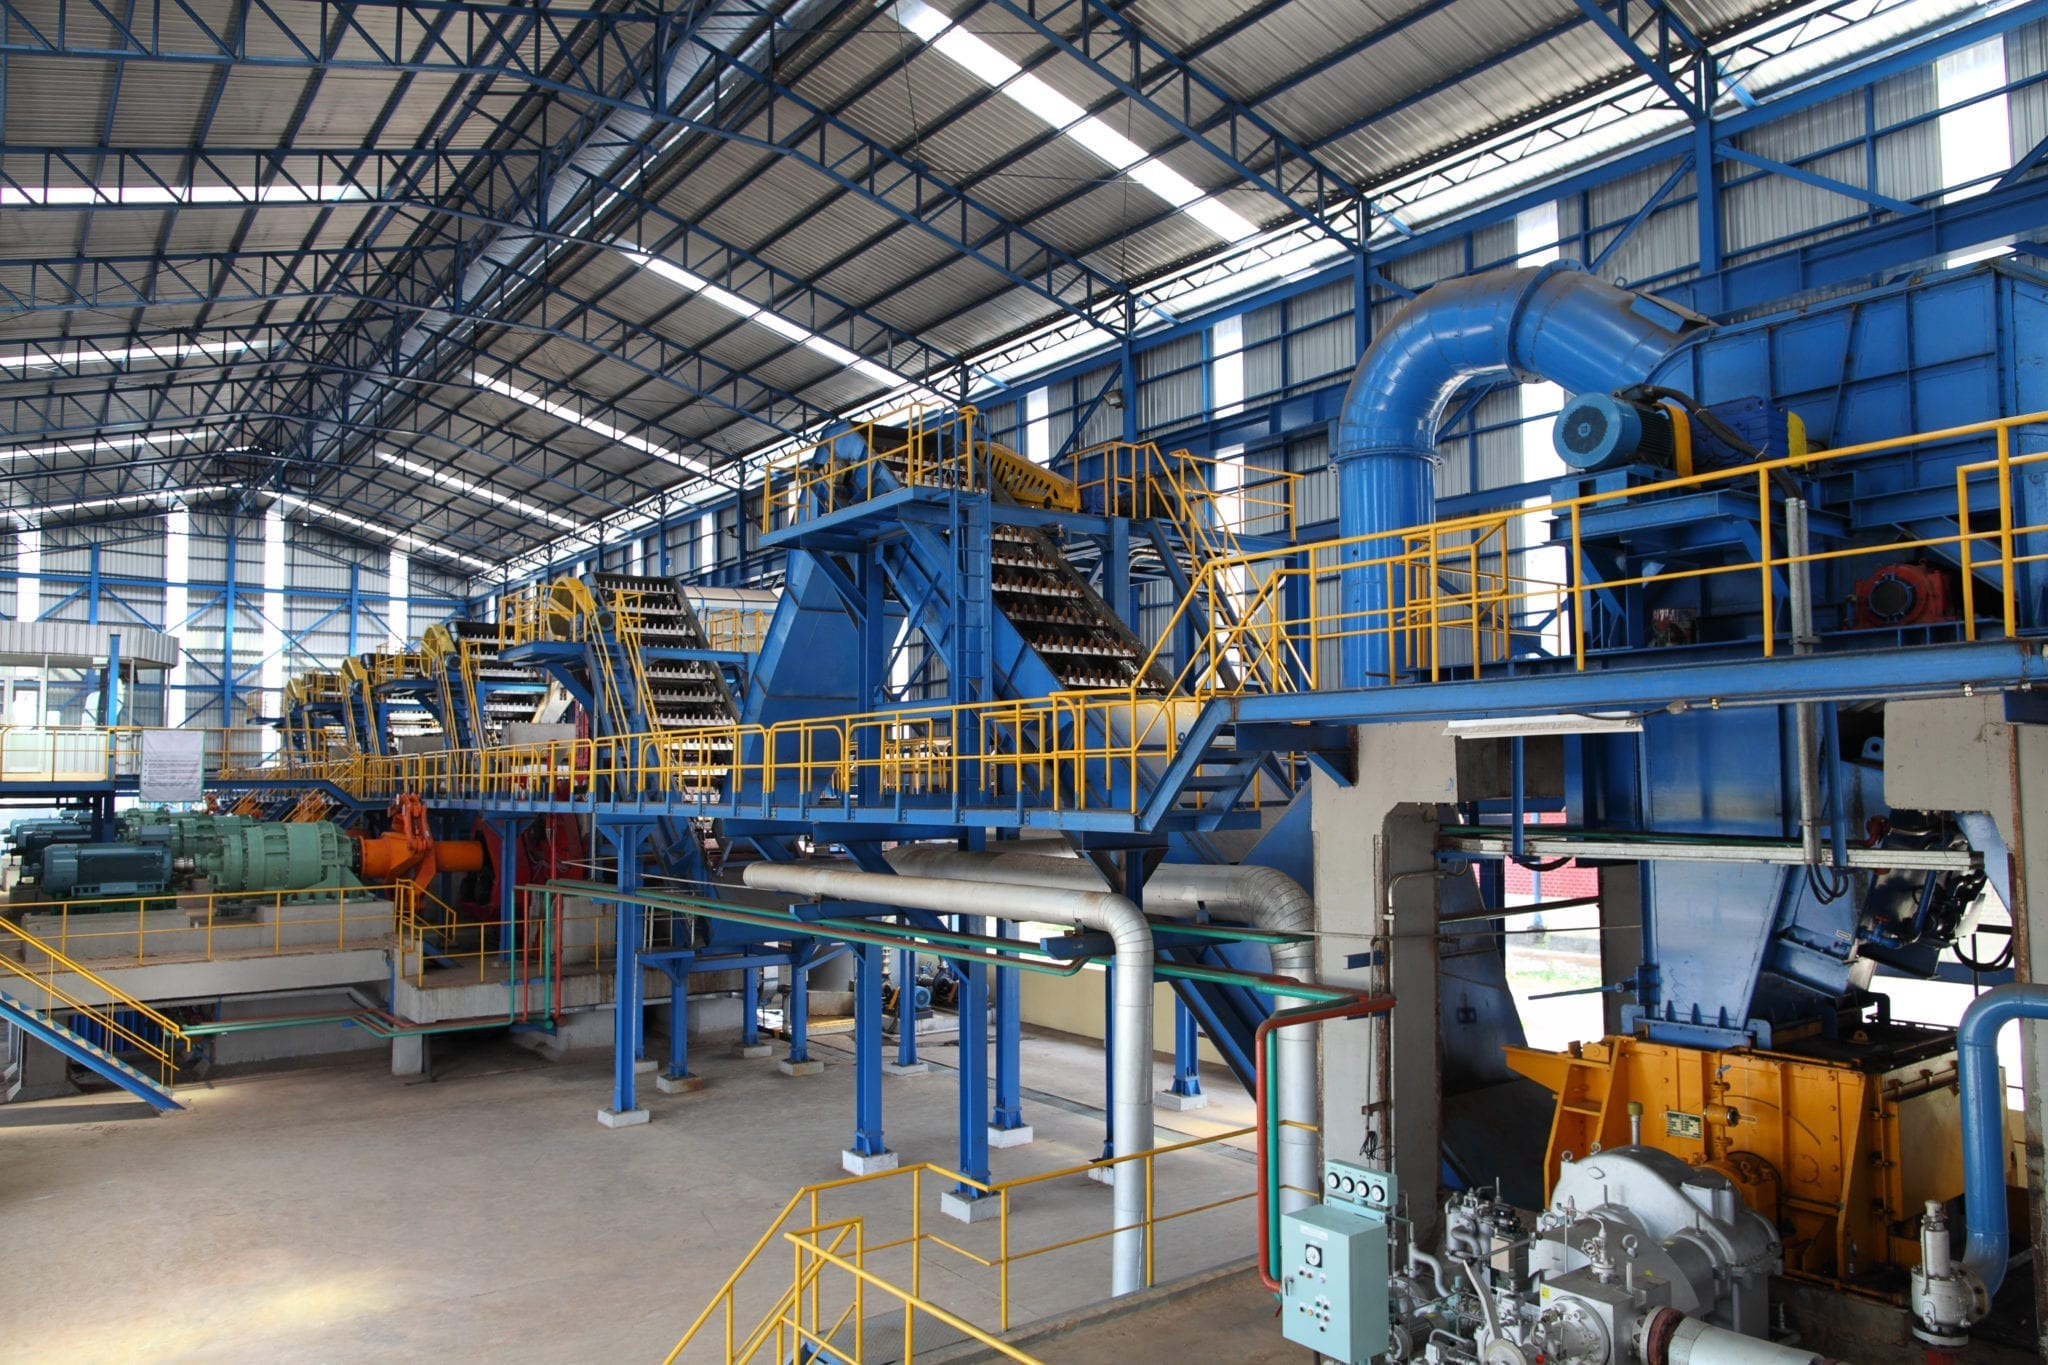 industrial pipes and sugar milling equipment